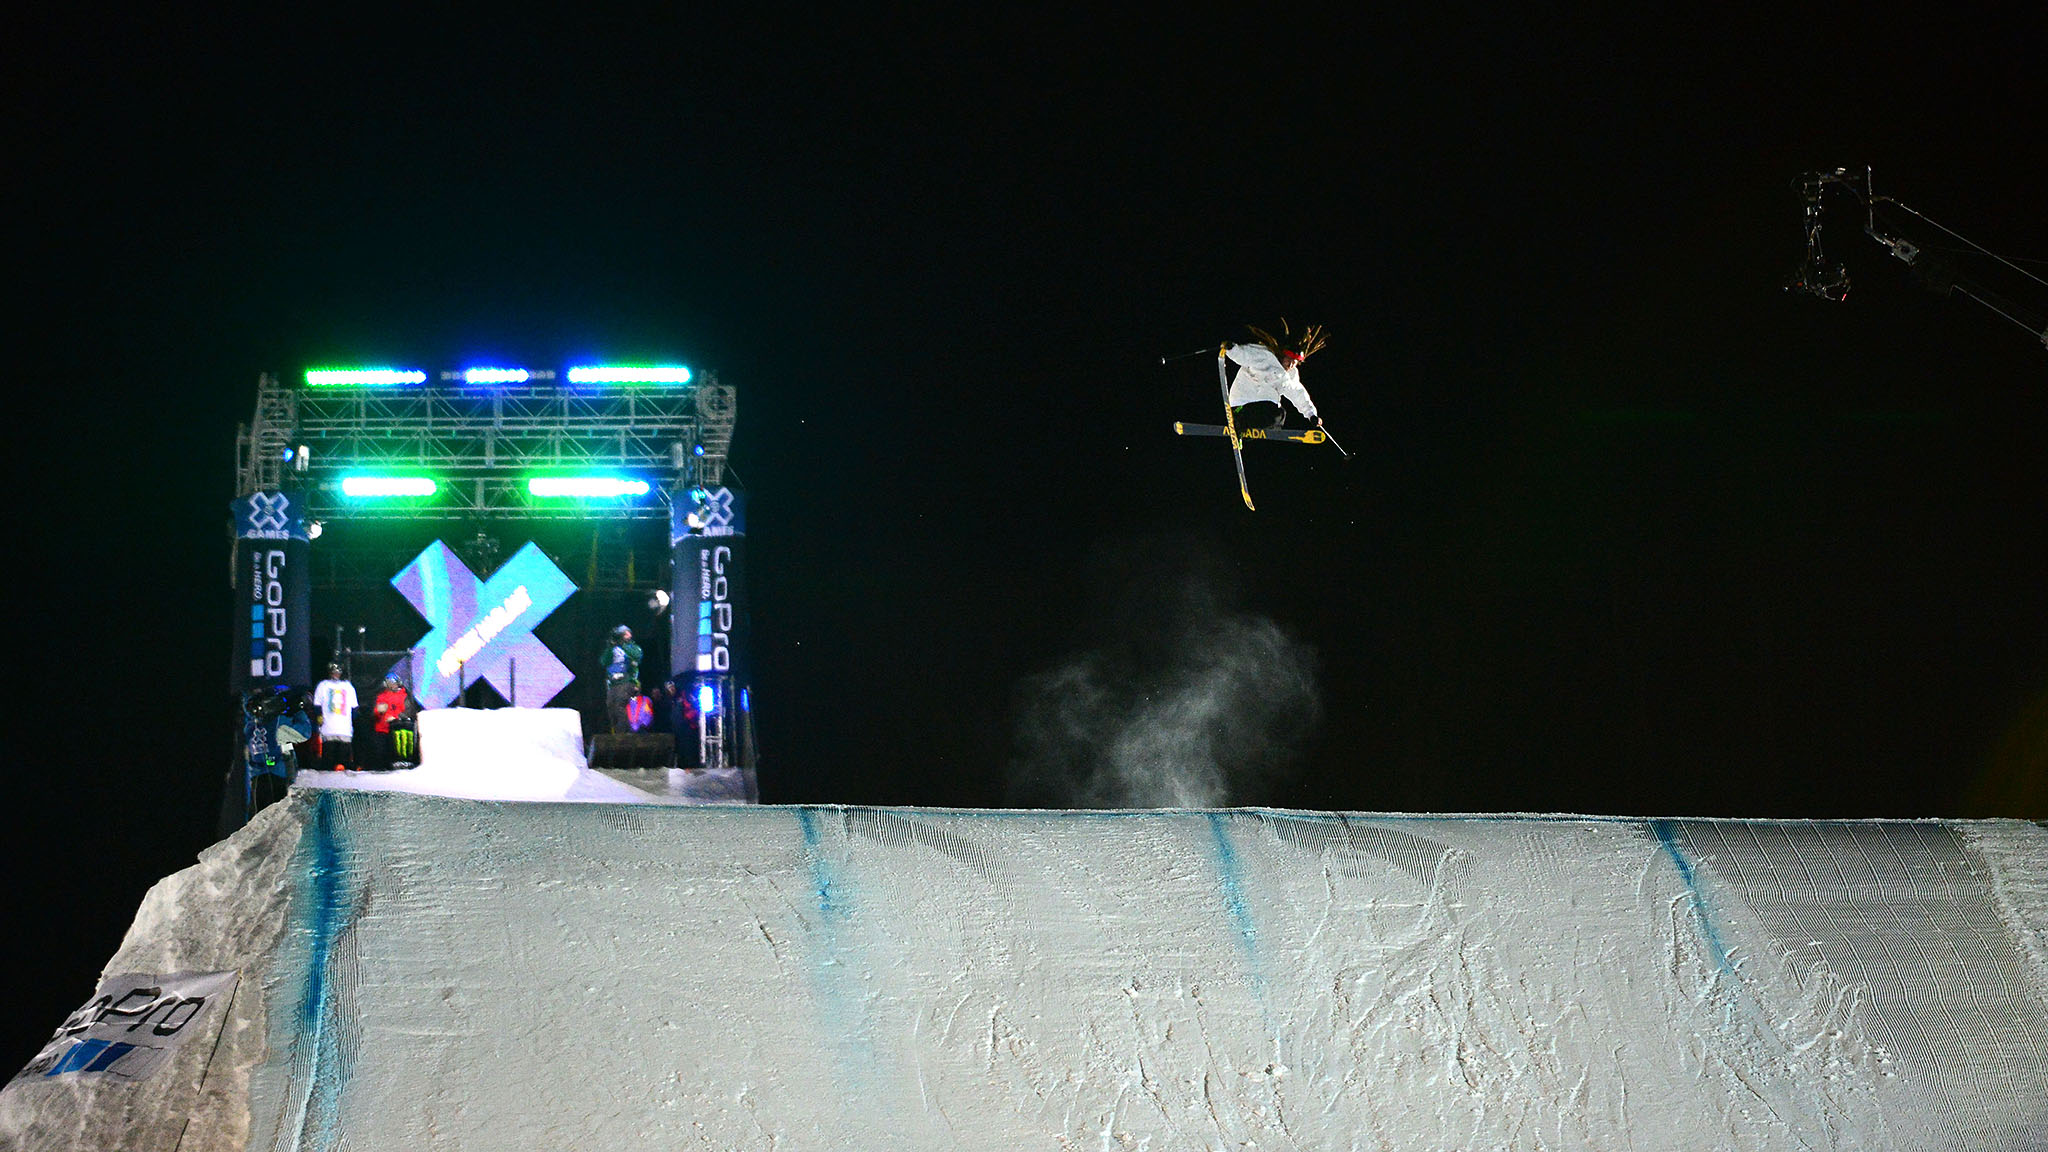 Sweden's Henrik Harlaut won Ski Big Air at X Games Aspen 2014 with the same trick he used to win in Aspen last year: a nose butter triple 1620. It felt like it was time to do it again, Harlaut said.